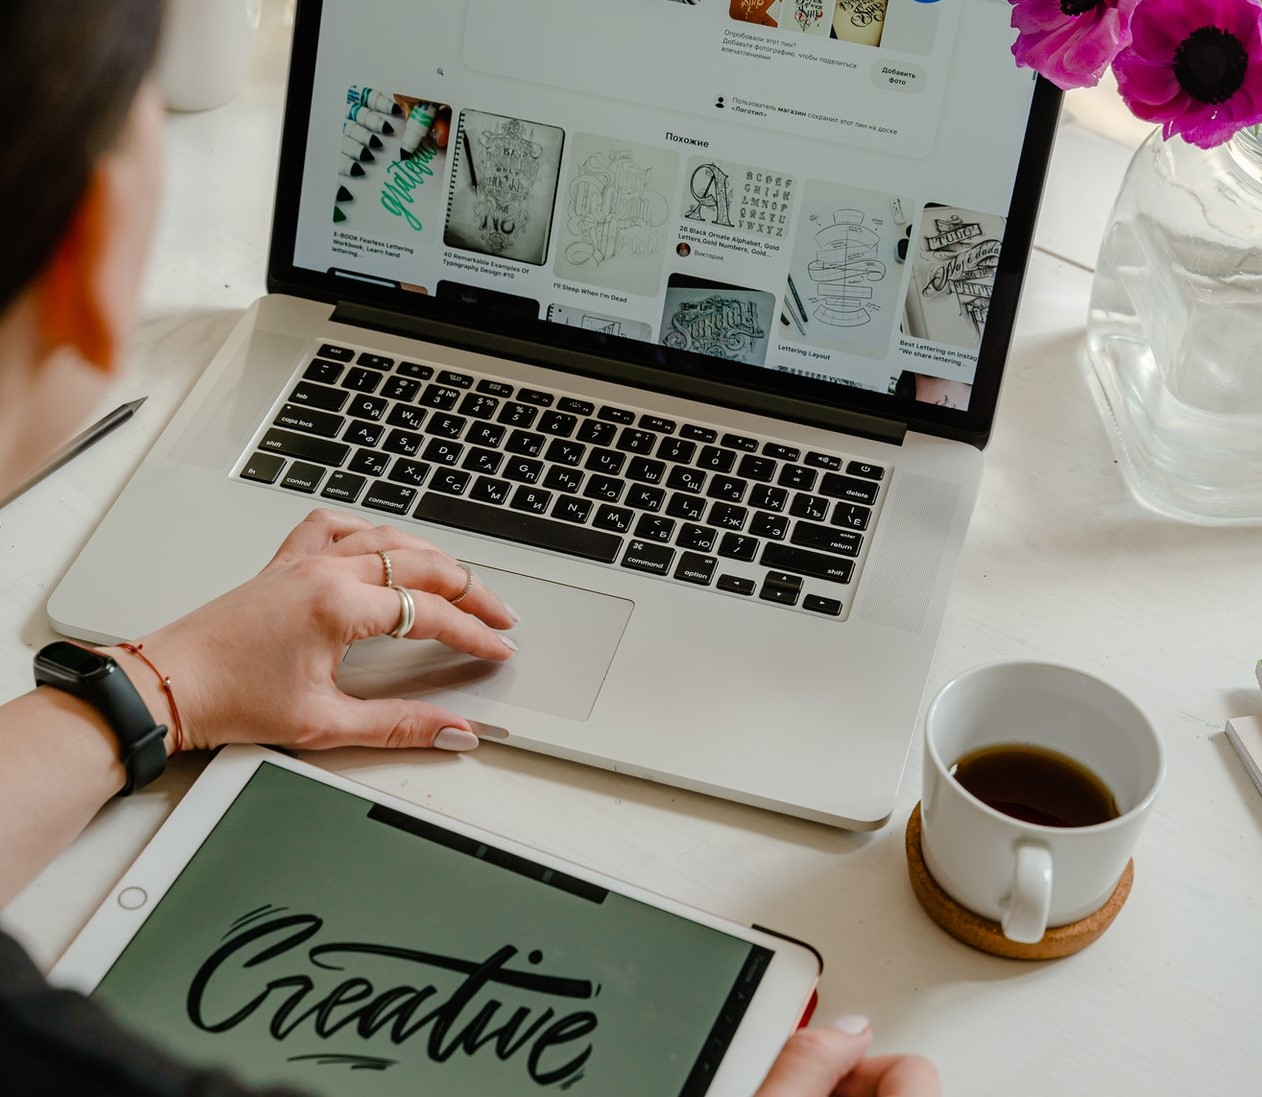 A graphic designer getting inspiration for a new project on Pinterest